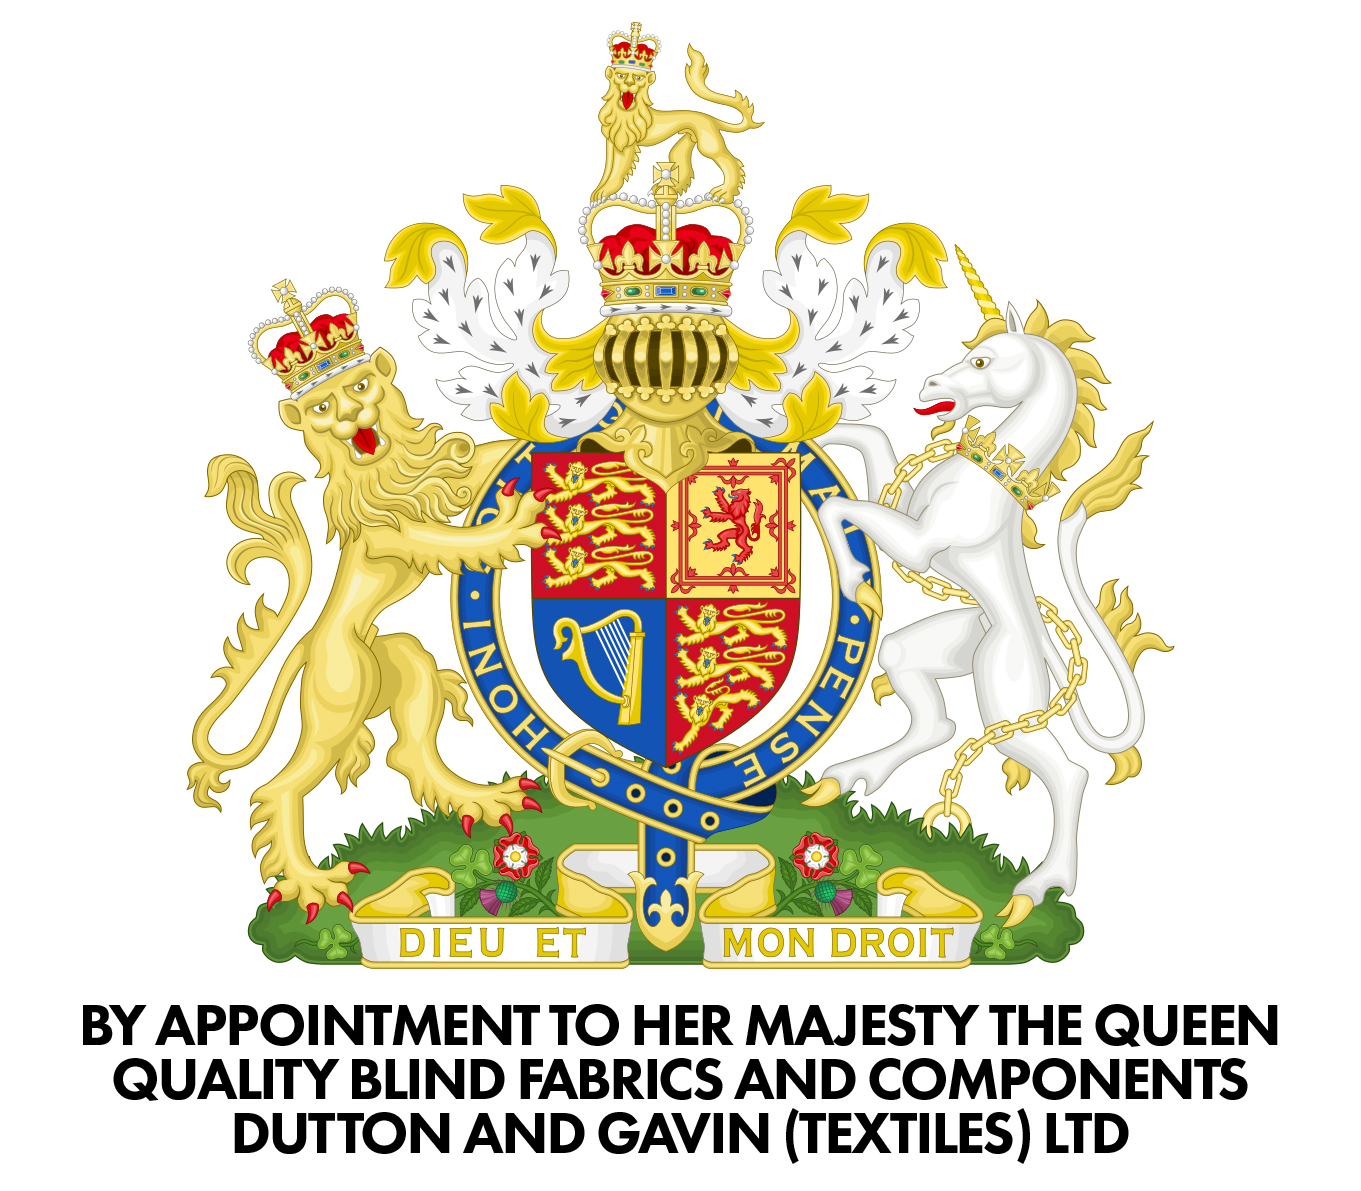 By Royal Appointment - We are very proud to display our Royal Warrant of Appointment – awarded to Dutton & Gavin Textiles as suppliers of quality blind fabrics and components to Her Majesty The Queen.